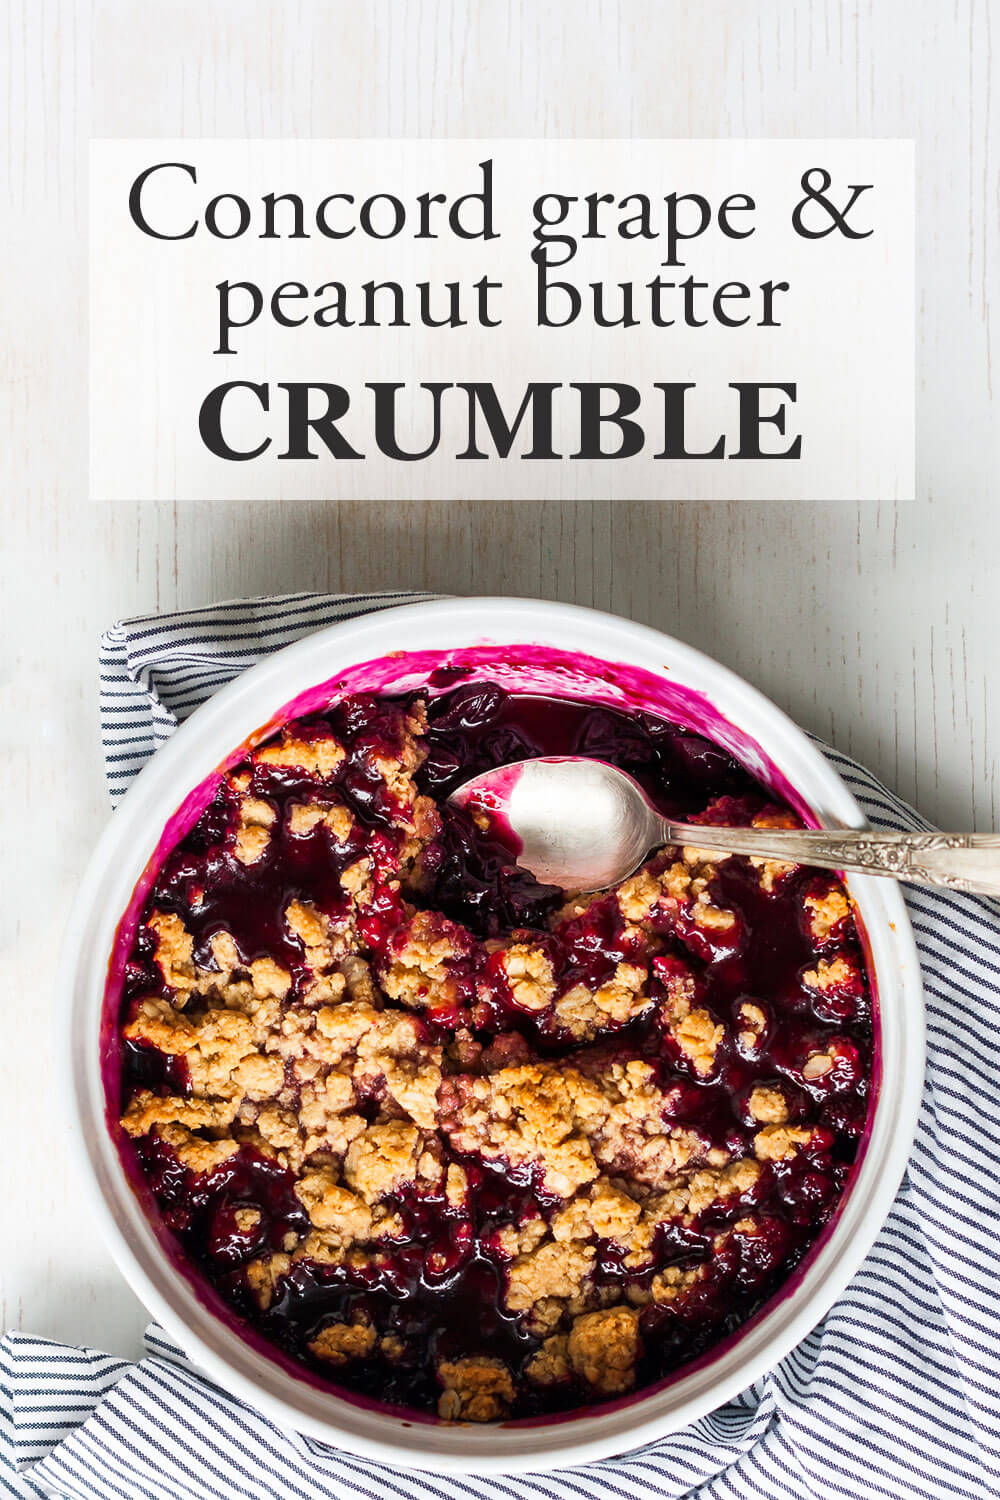 Concord grape cris with peanut butter crumble in a large white round baking dish with a silver serving spoon and a blue and white table linen